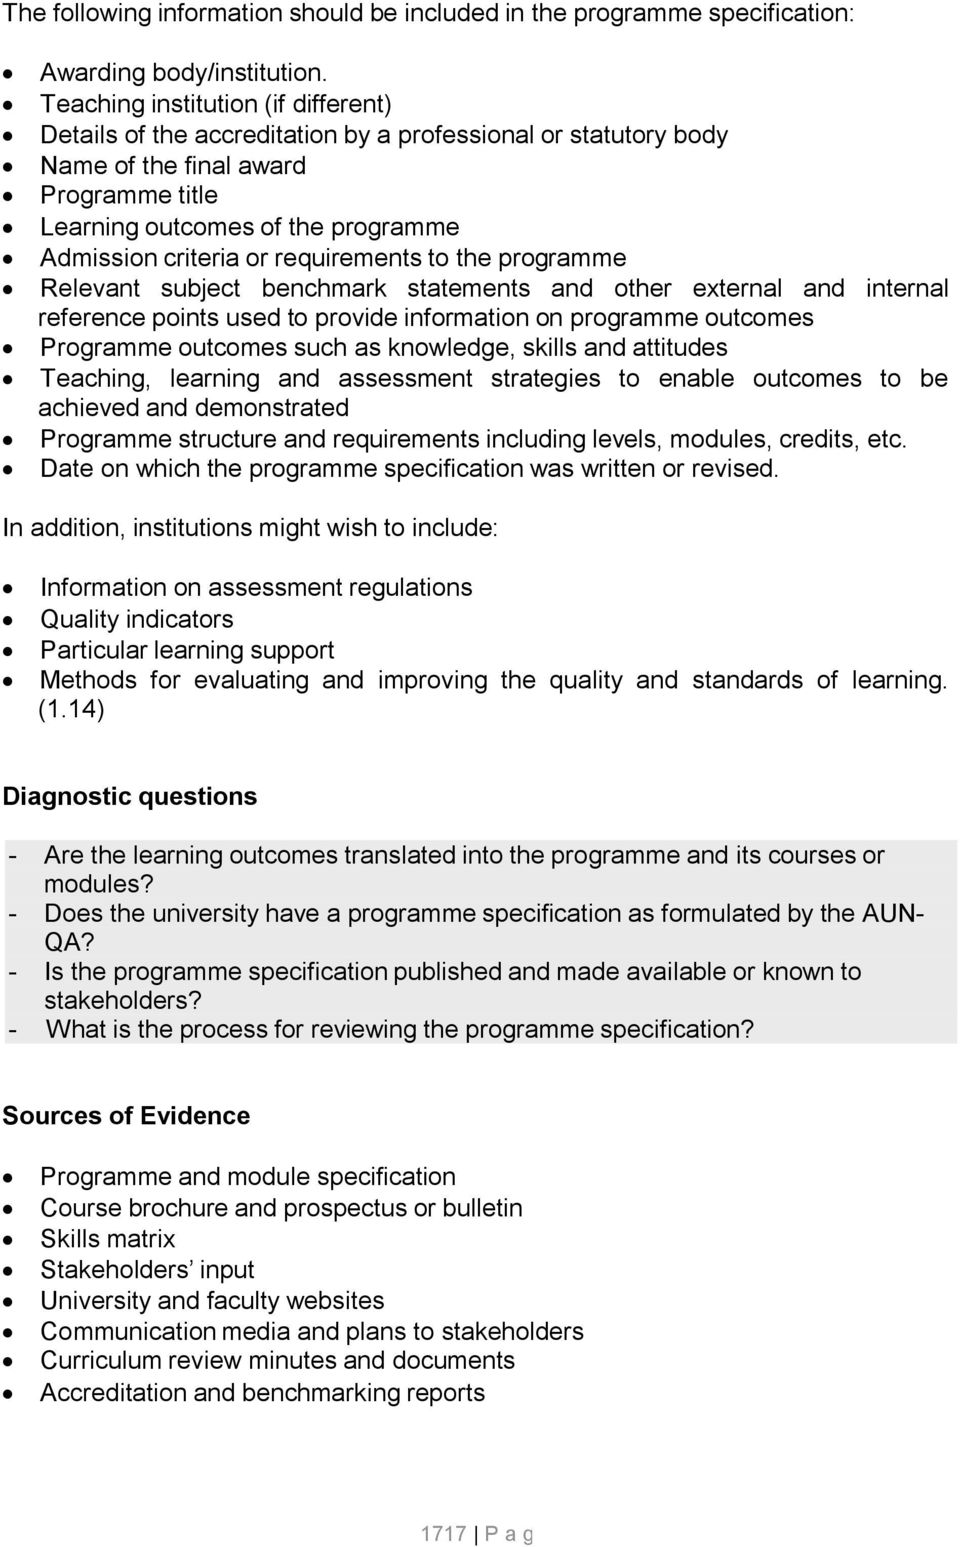 requirements to the programme Relevant subject benchmark statements and other external and internal reference points used to provide information on programme outcomes Programme outcomes such as